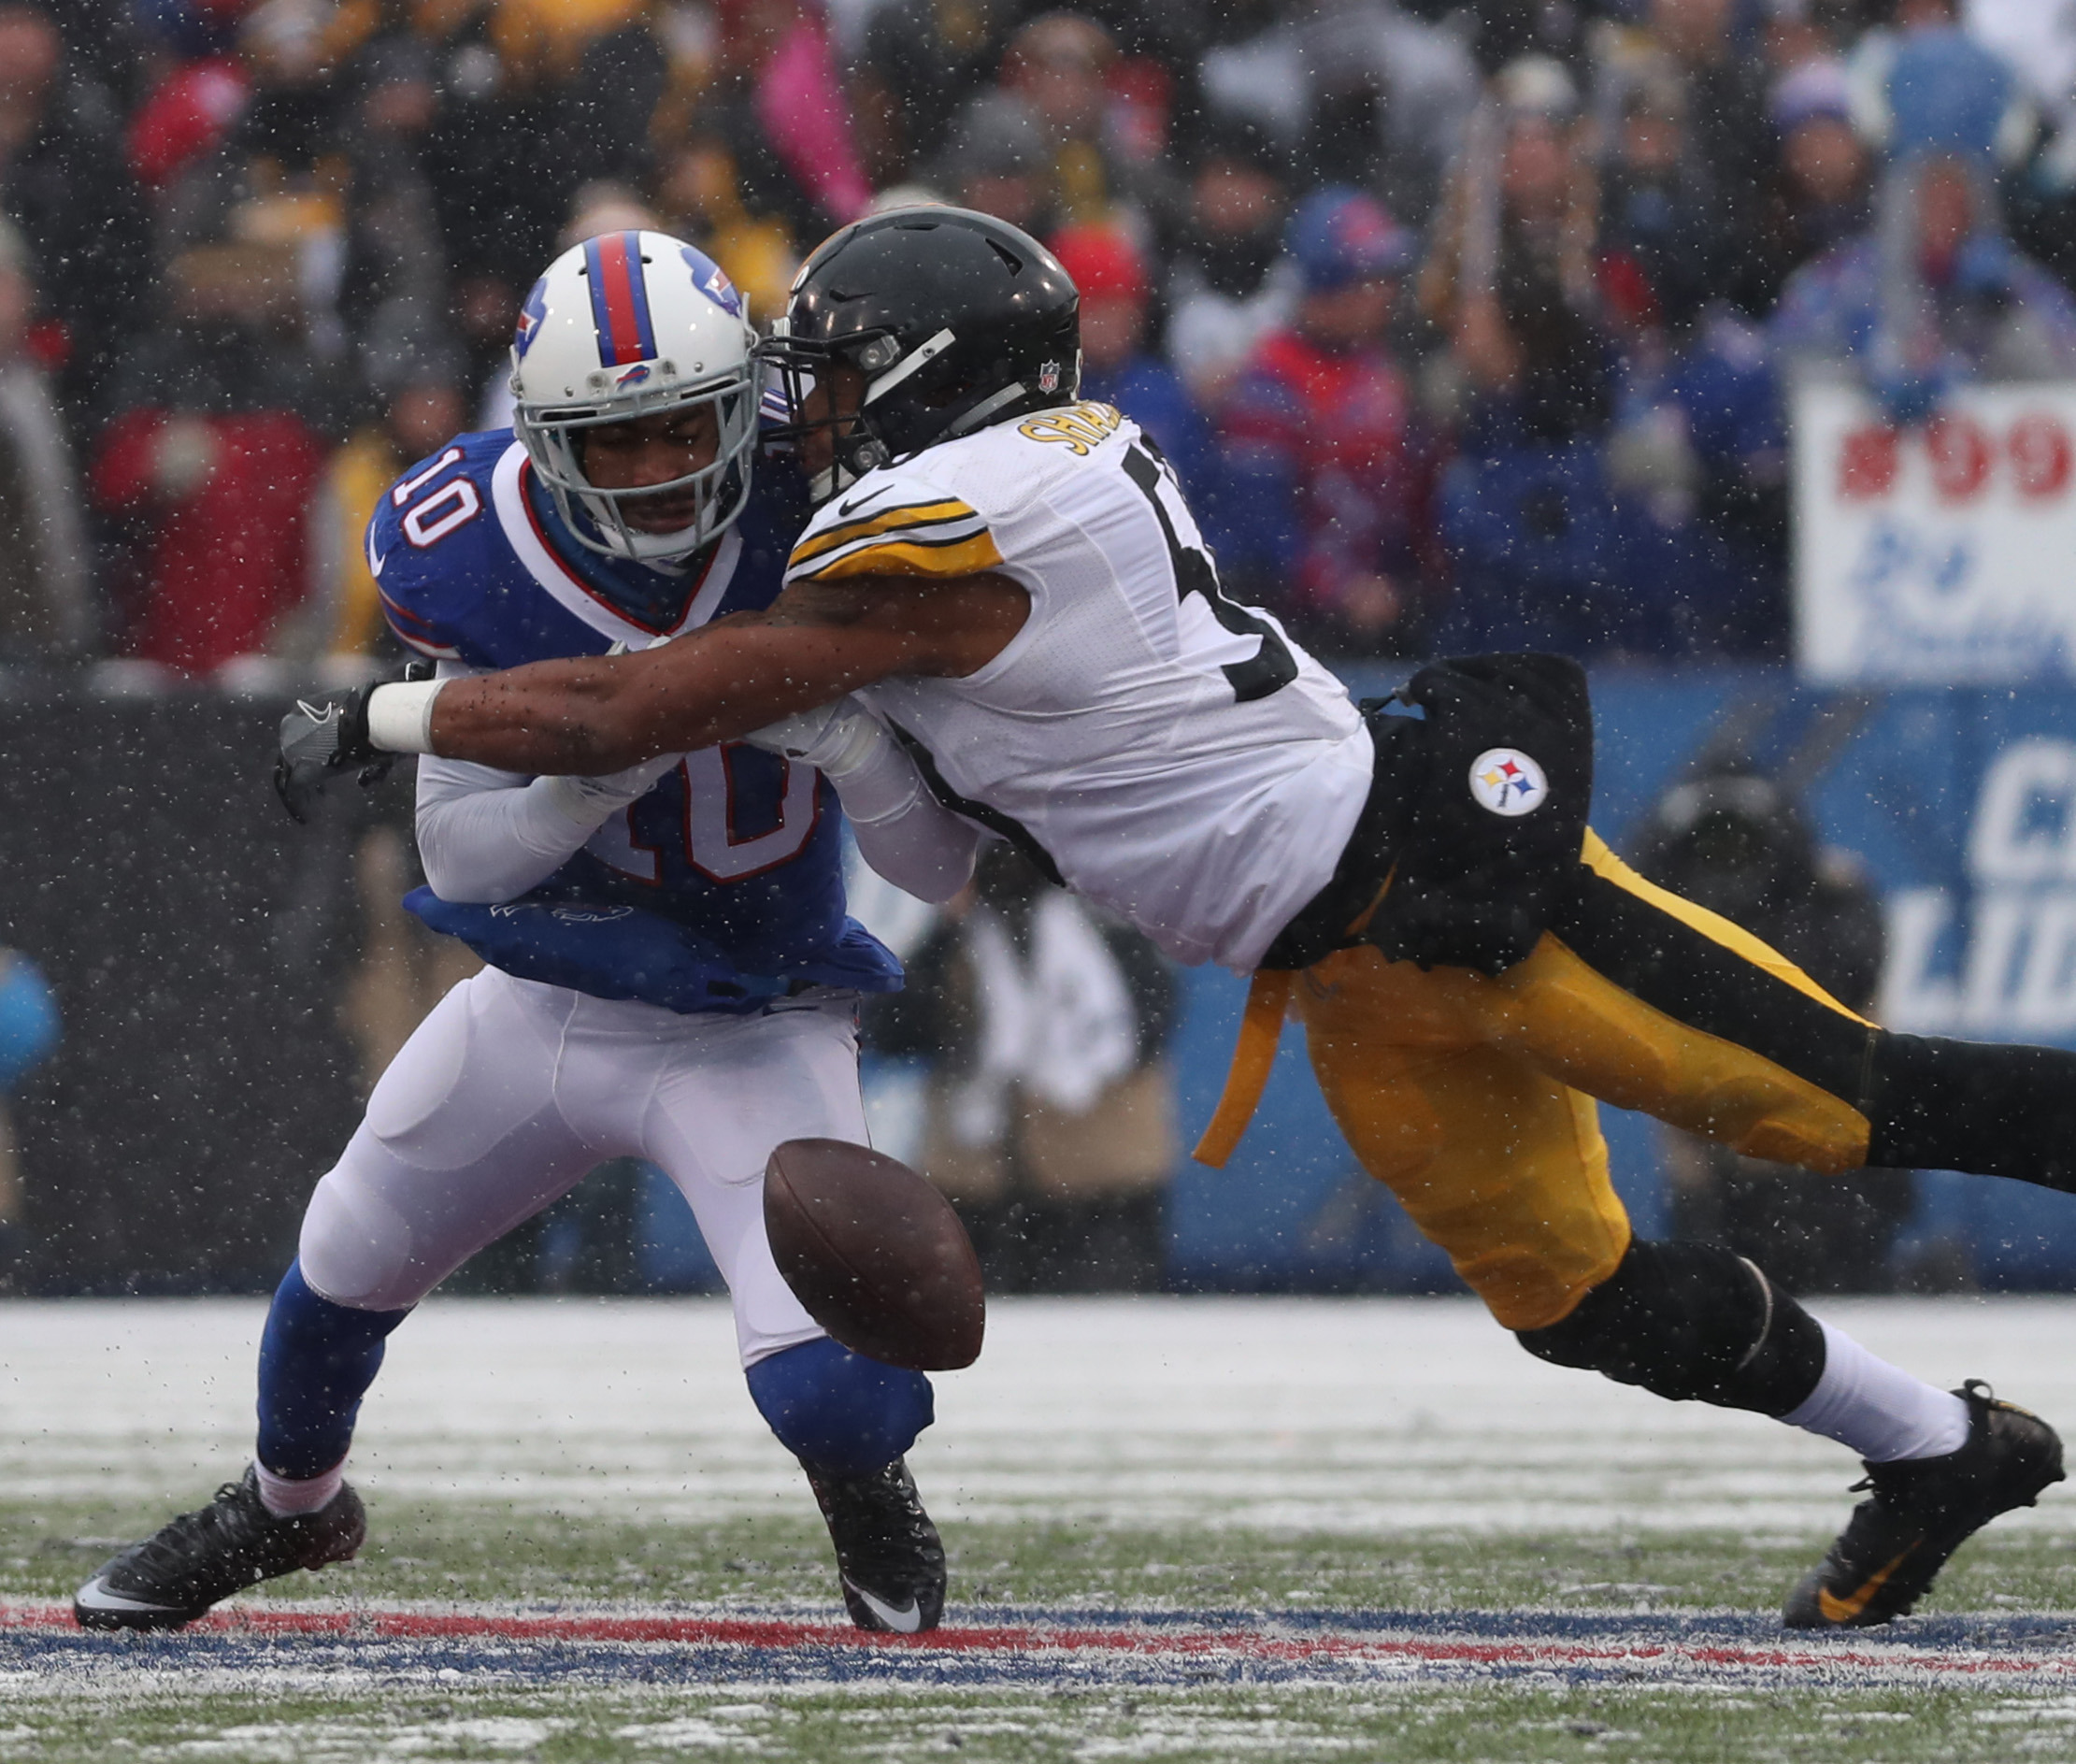 Robert Woods (10) drops the ball while covered by Pittsburgh Steelers linebacker Ryan Shazier in the Dec. 11 game at New Era Field. (James P. McCoy/Buffalo News)